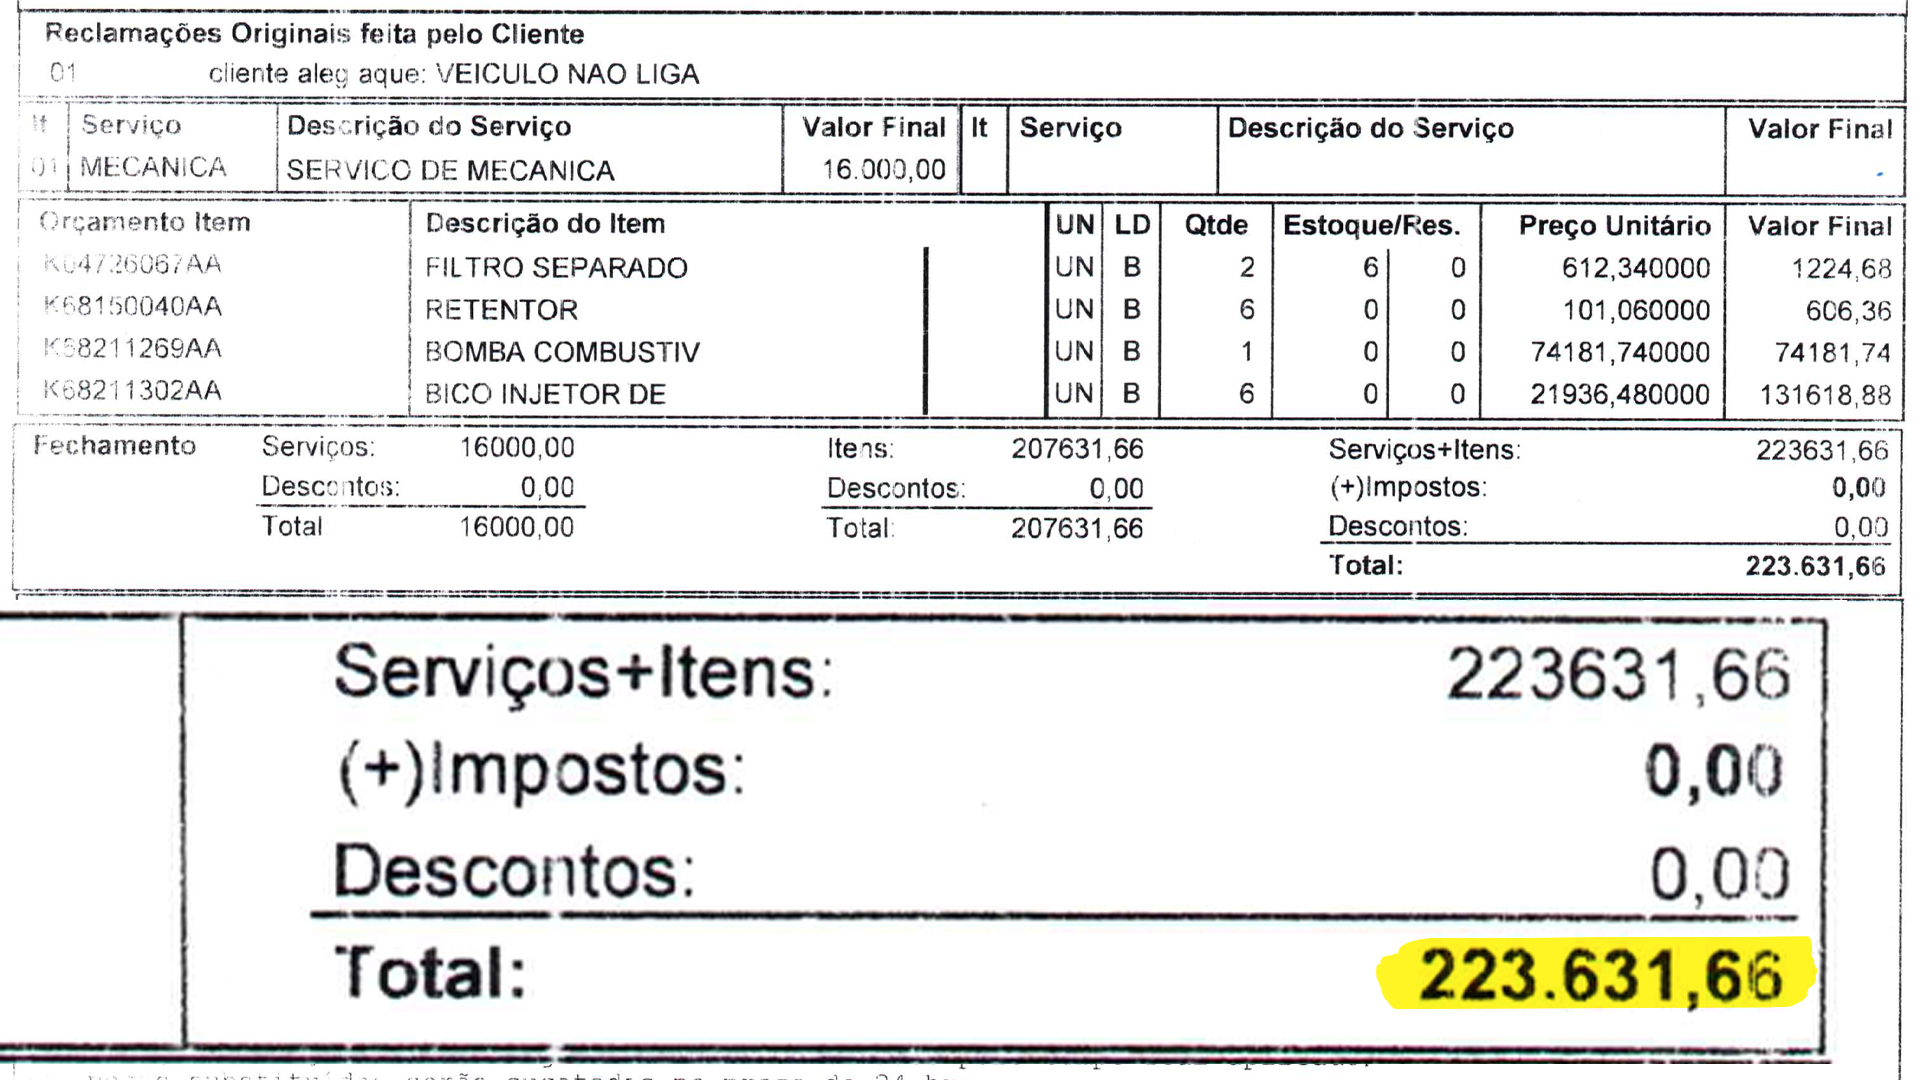 nota fiscal jeep